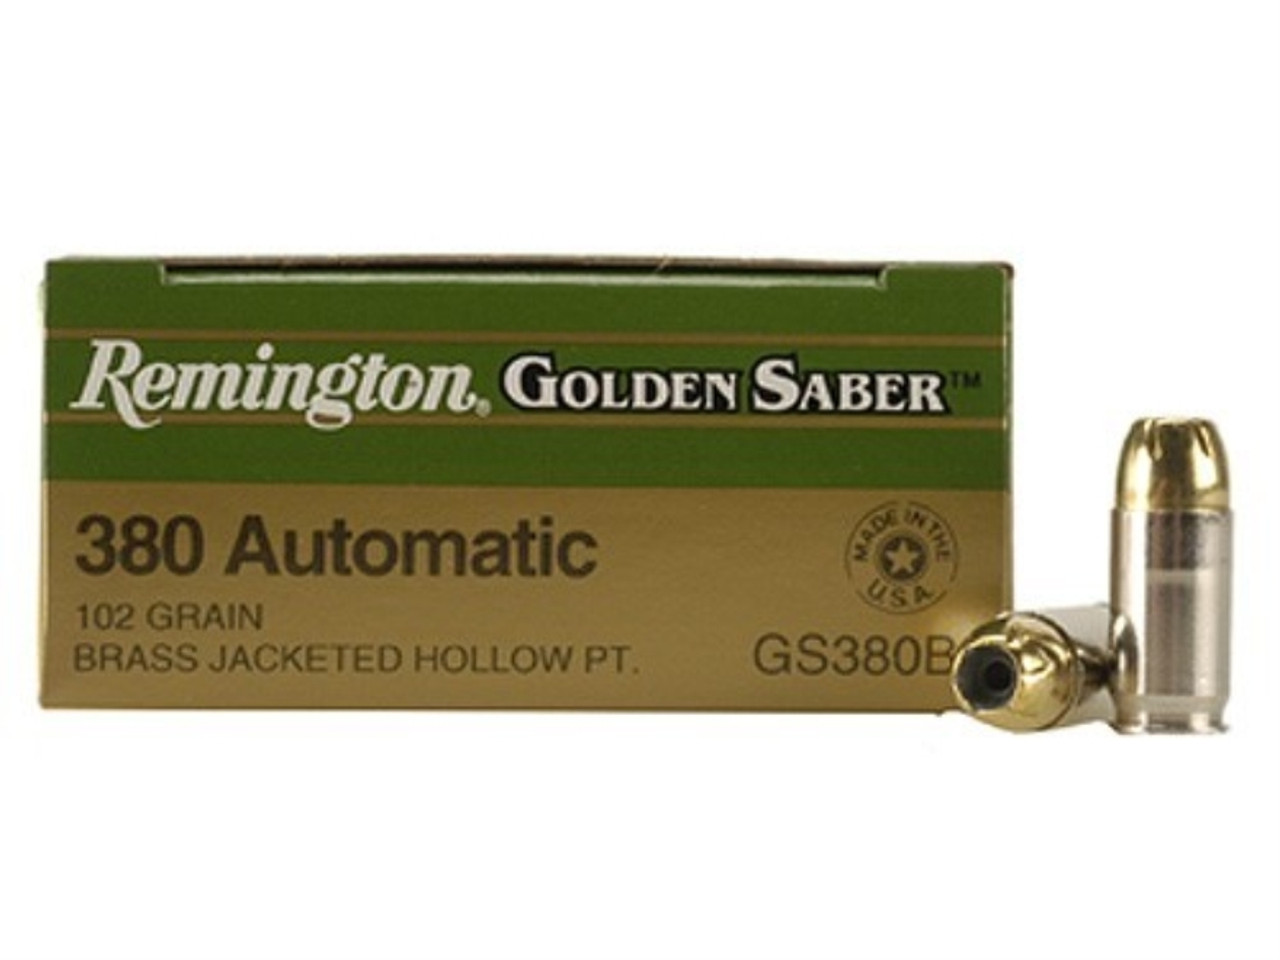 REMINGTON GOLDEN SABER  380 ACP 102 GRAIN BRASS JACKETED HOLLOW POINT 25  ROUND/ BOX AMMO